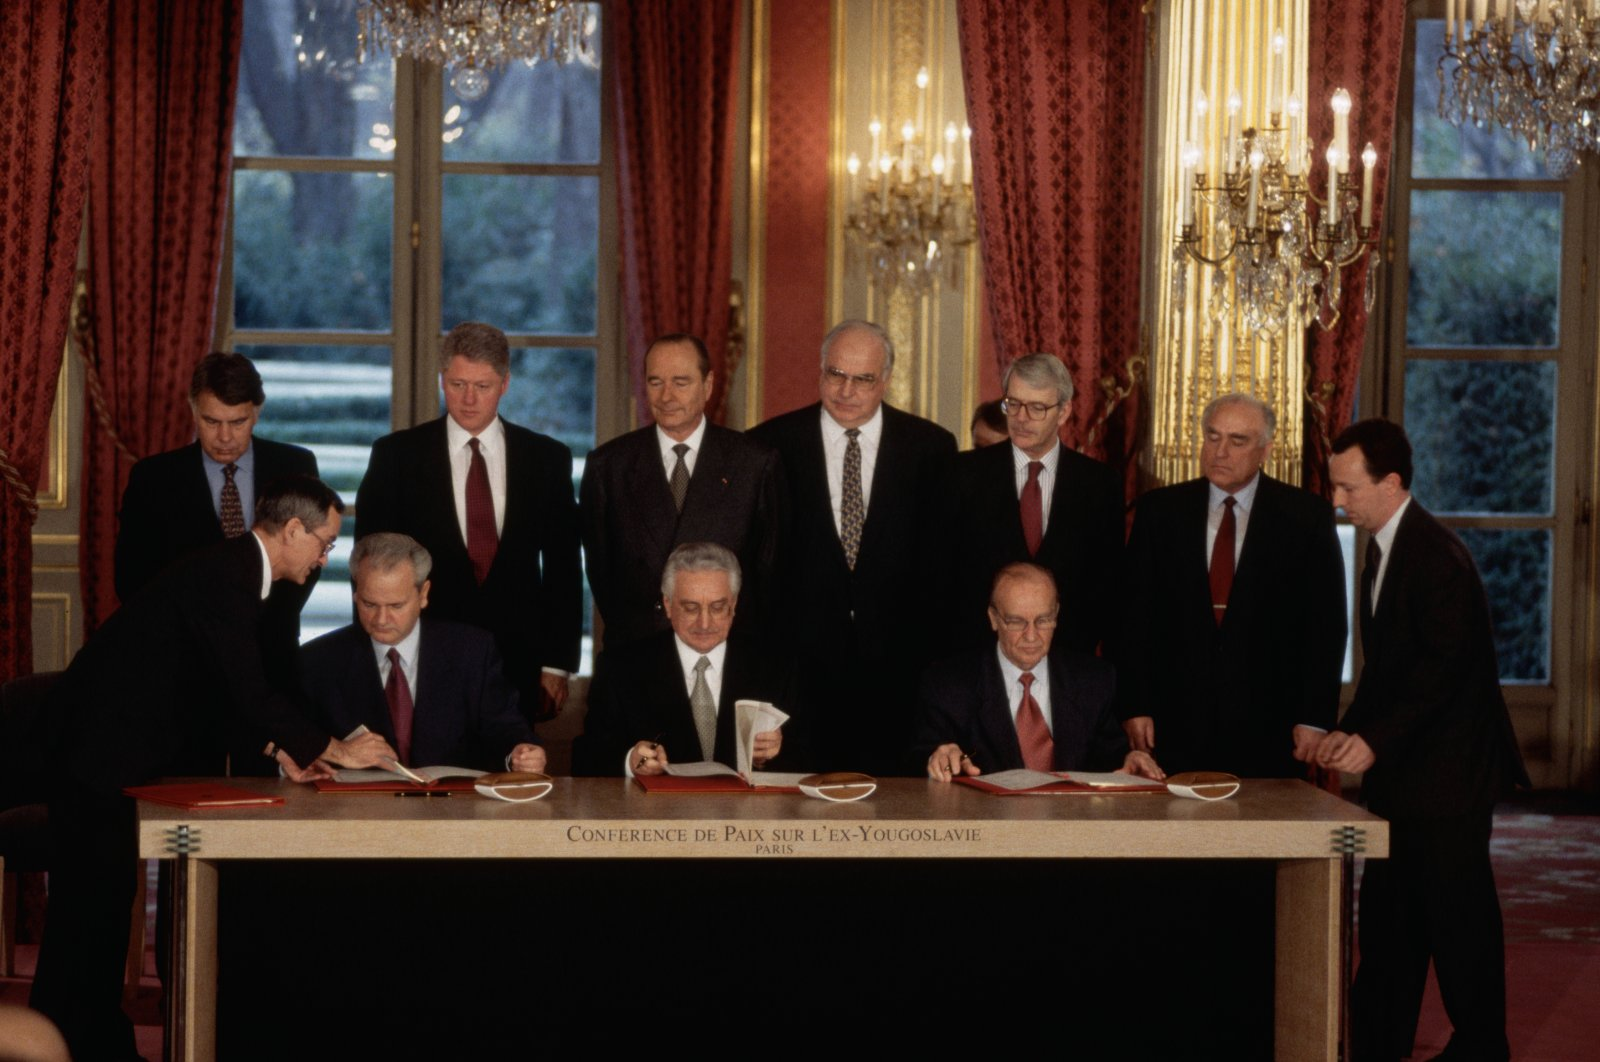 (From L to R on table) Serbian President Slobodan Milosevic, Croatian President Franjo Tudjman and Bosnian President Alija Izetbegovic sign multiple copies of the Dayton Peace Agreement as the participant other world leaders look on, in the Palais de l'Elysee, Paris, France, Dec. 14, 1995. (Photo by Getty Images)